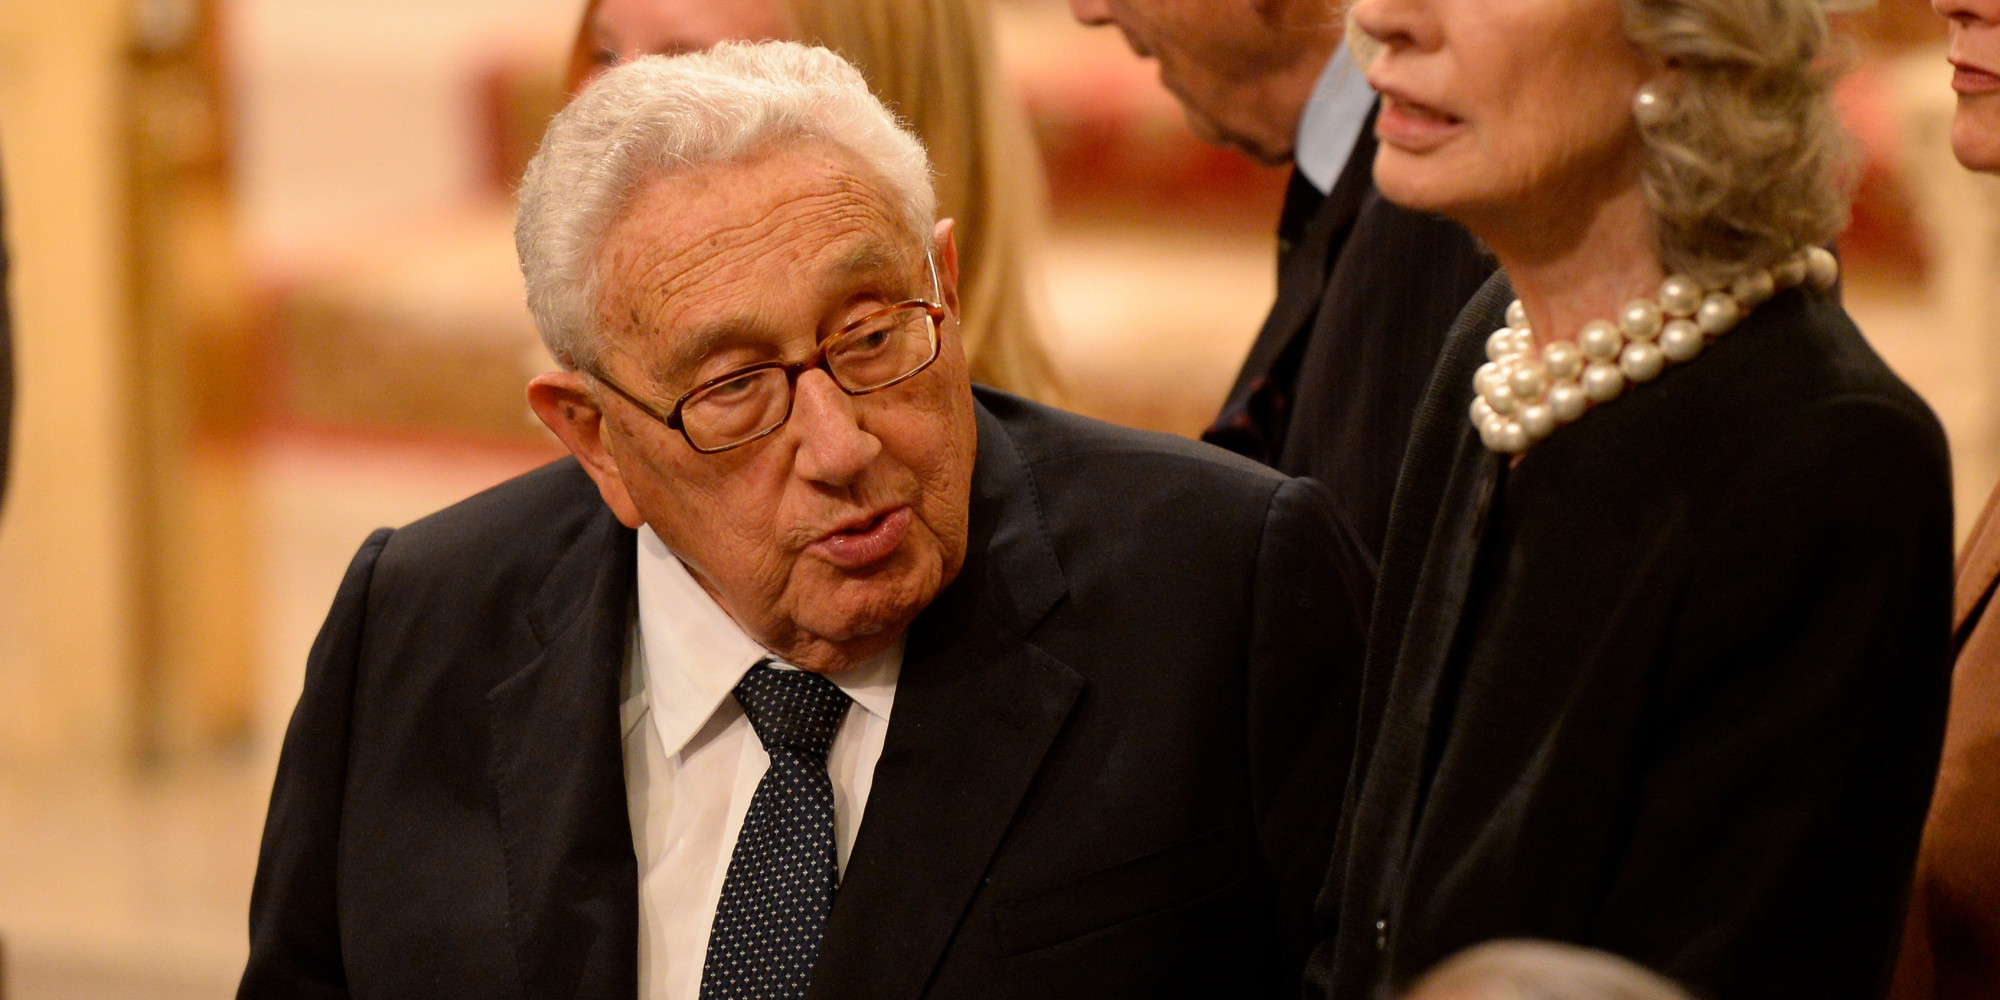 Henry kissinger diplomacy thesis